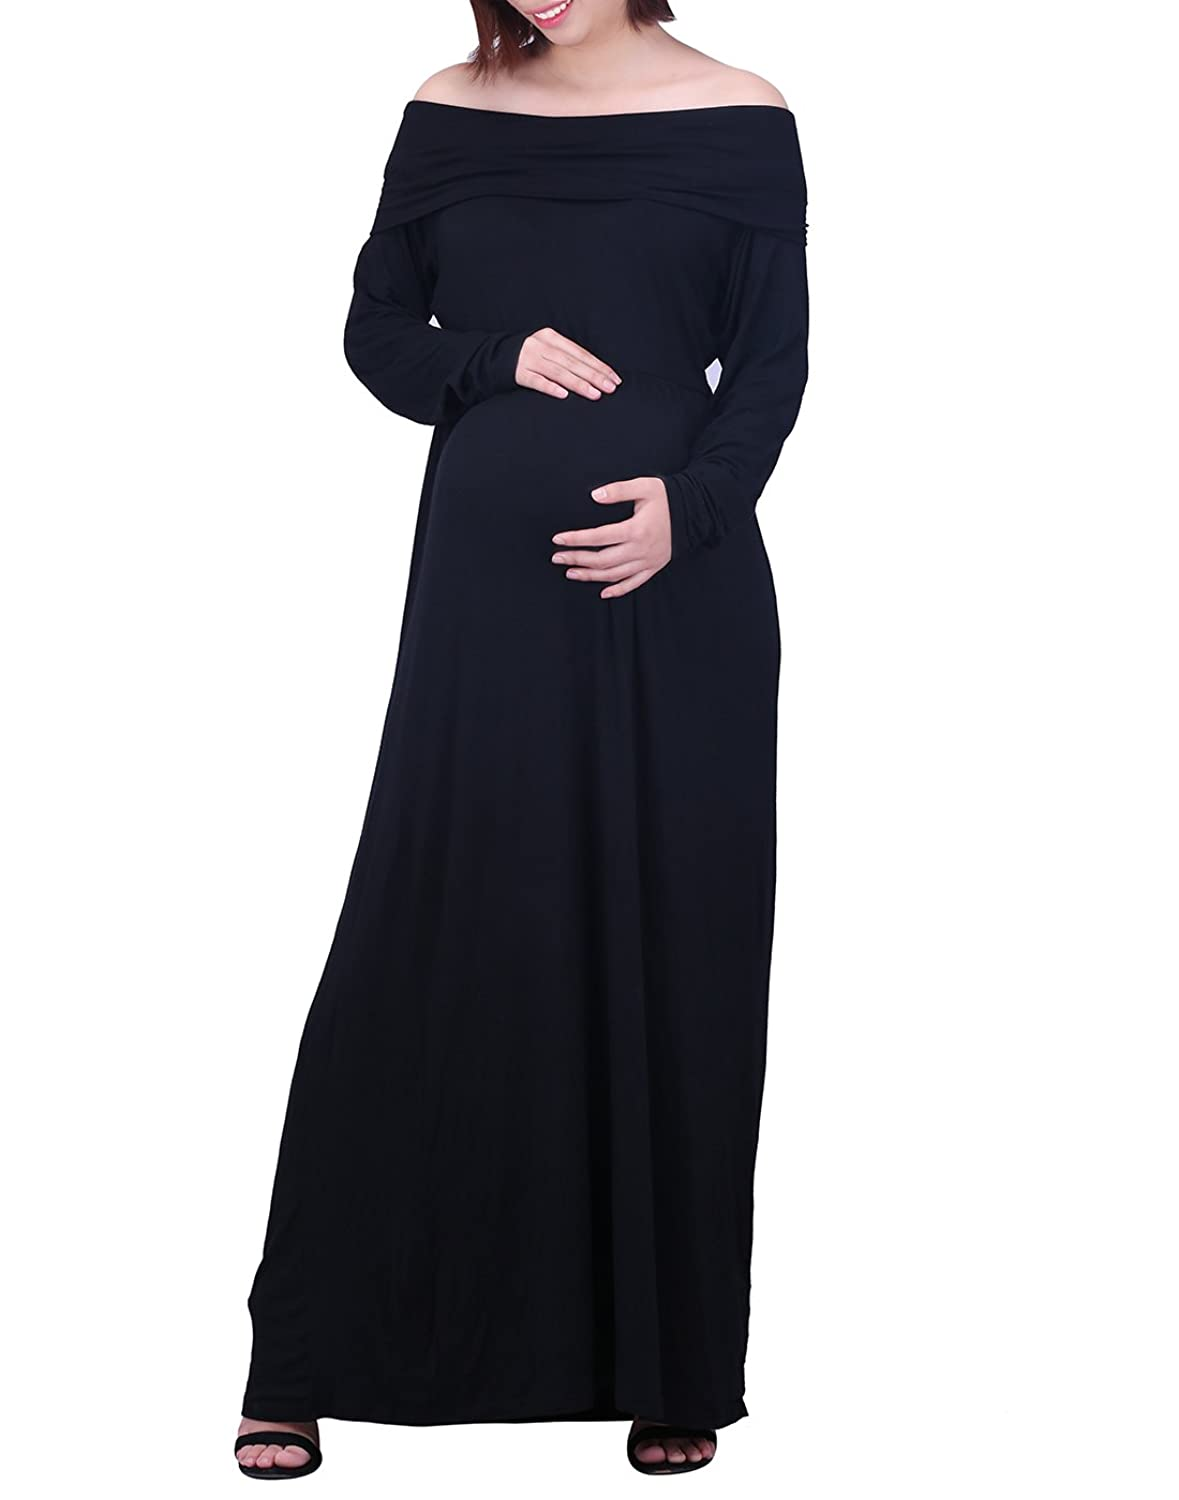 59787293cd50f HDE Women's Off The Shoulder Dress Mother Maternity Cowl Neck Long Sleeve  Maxi: Amazon.co.uk: Clothing